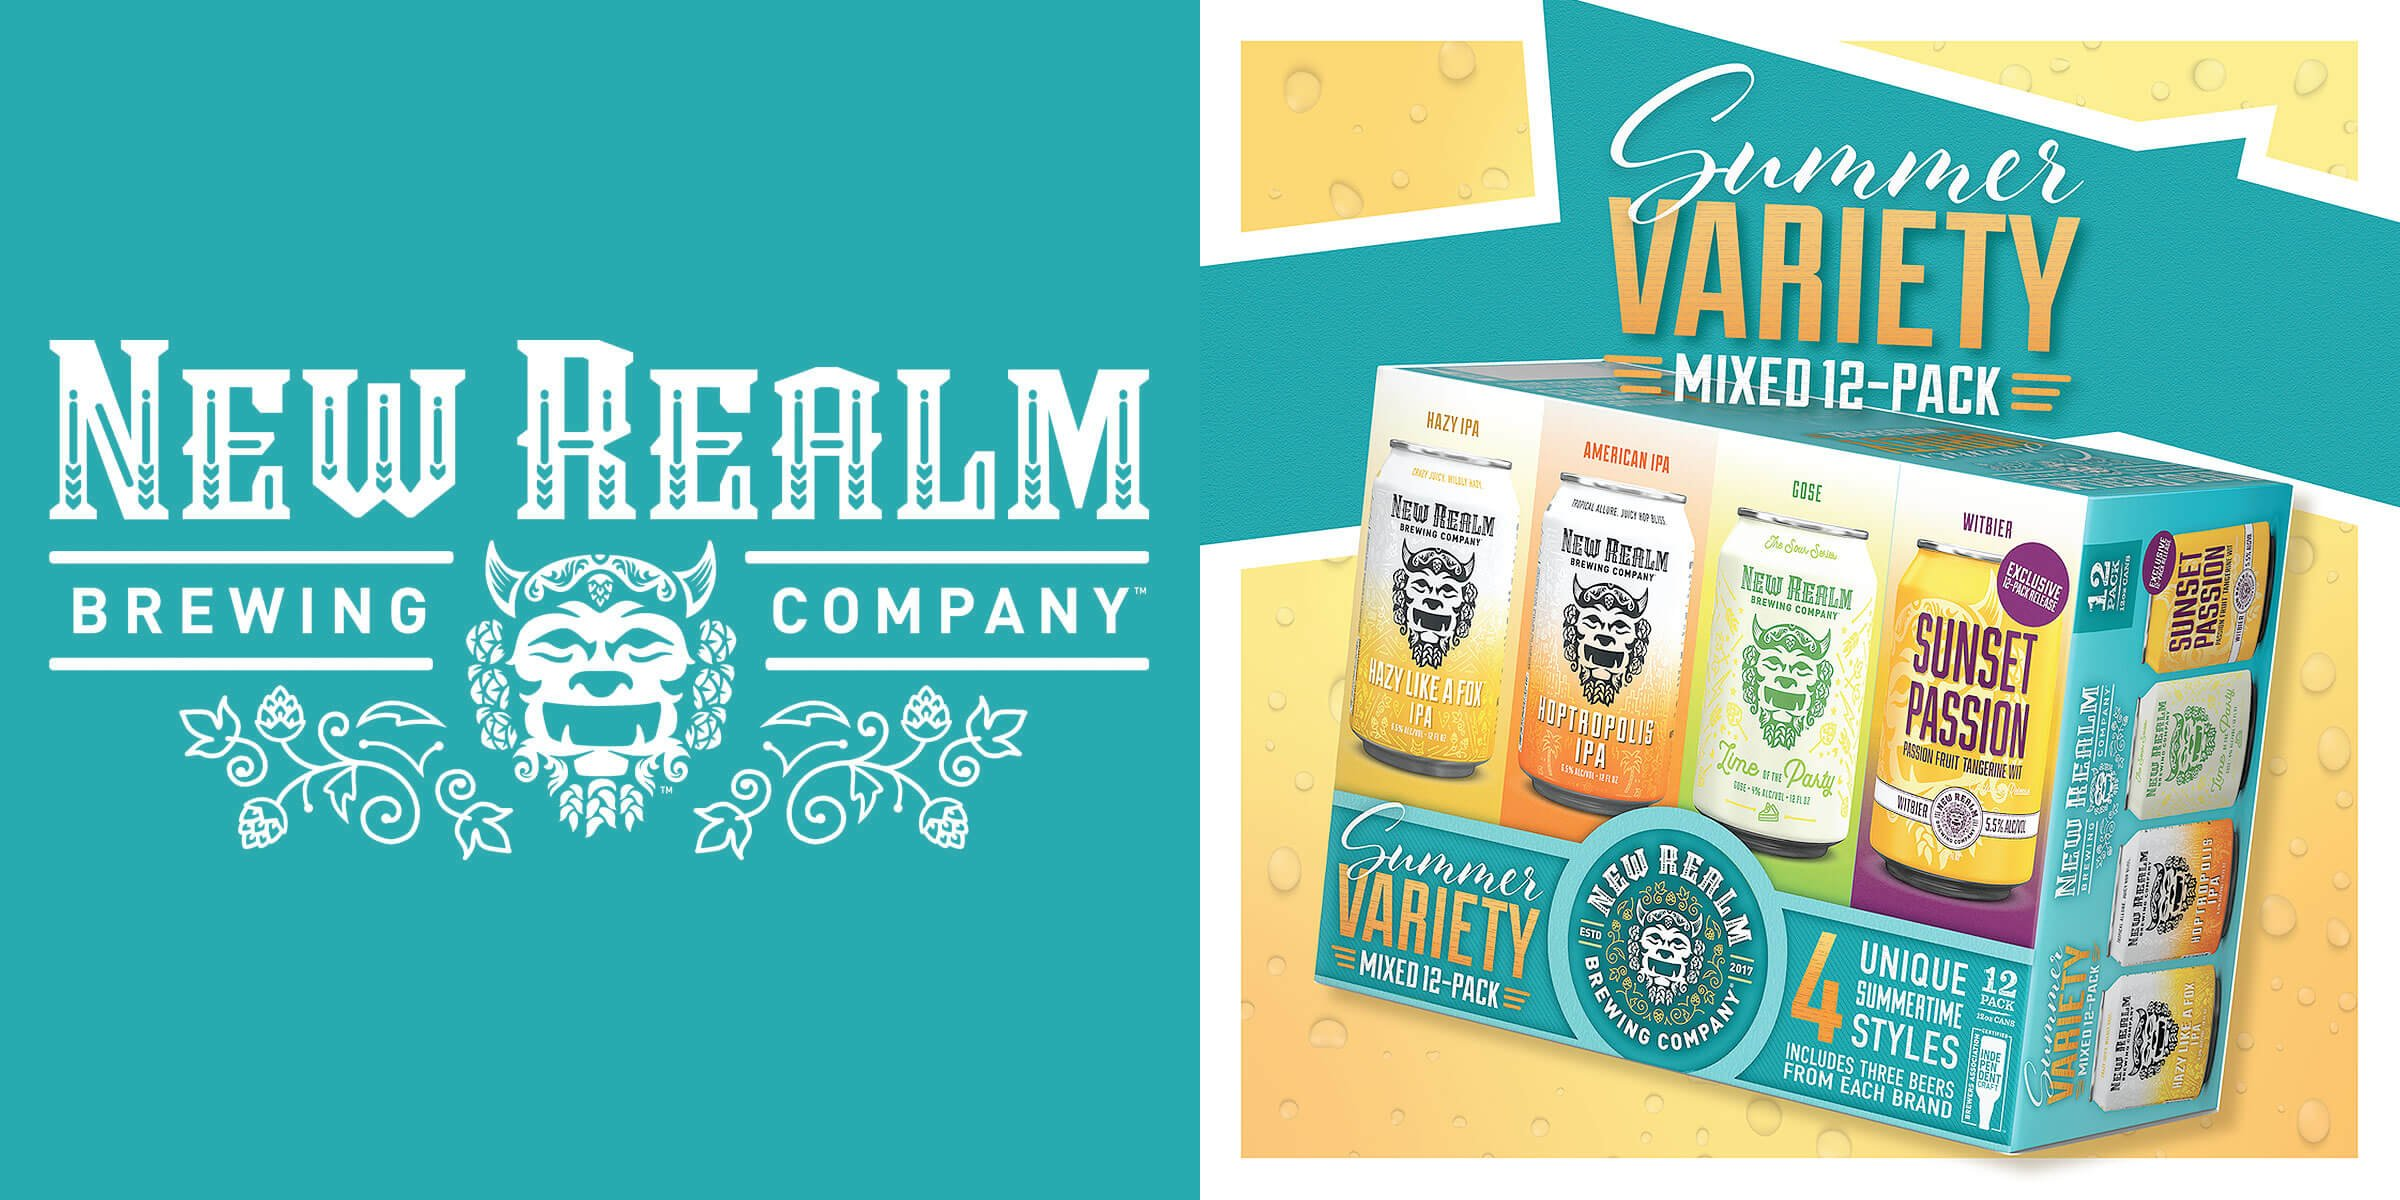 New Realm Brewing Company is releasing their Summer Variety Mixed 12-Pack which includes a trio of fan favorites and an exclusive offering, Sunset Passion.